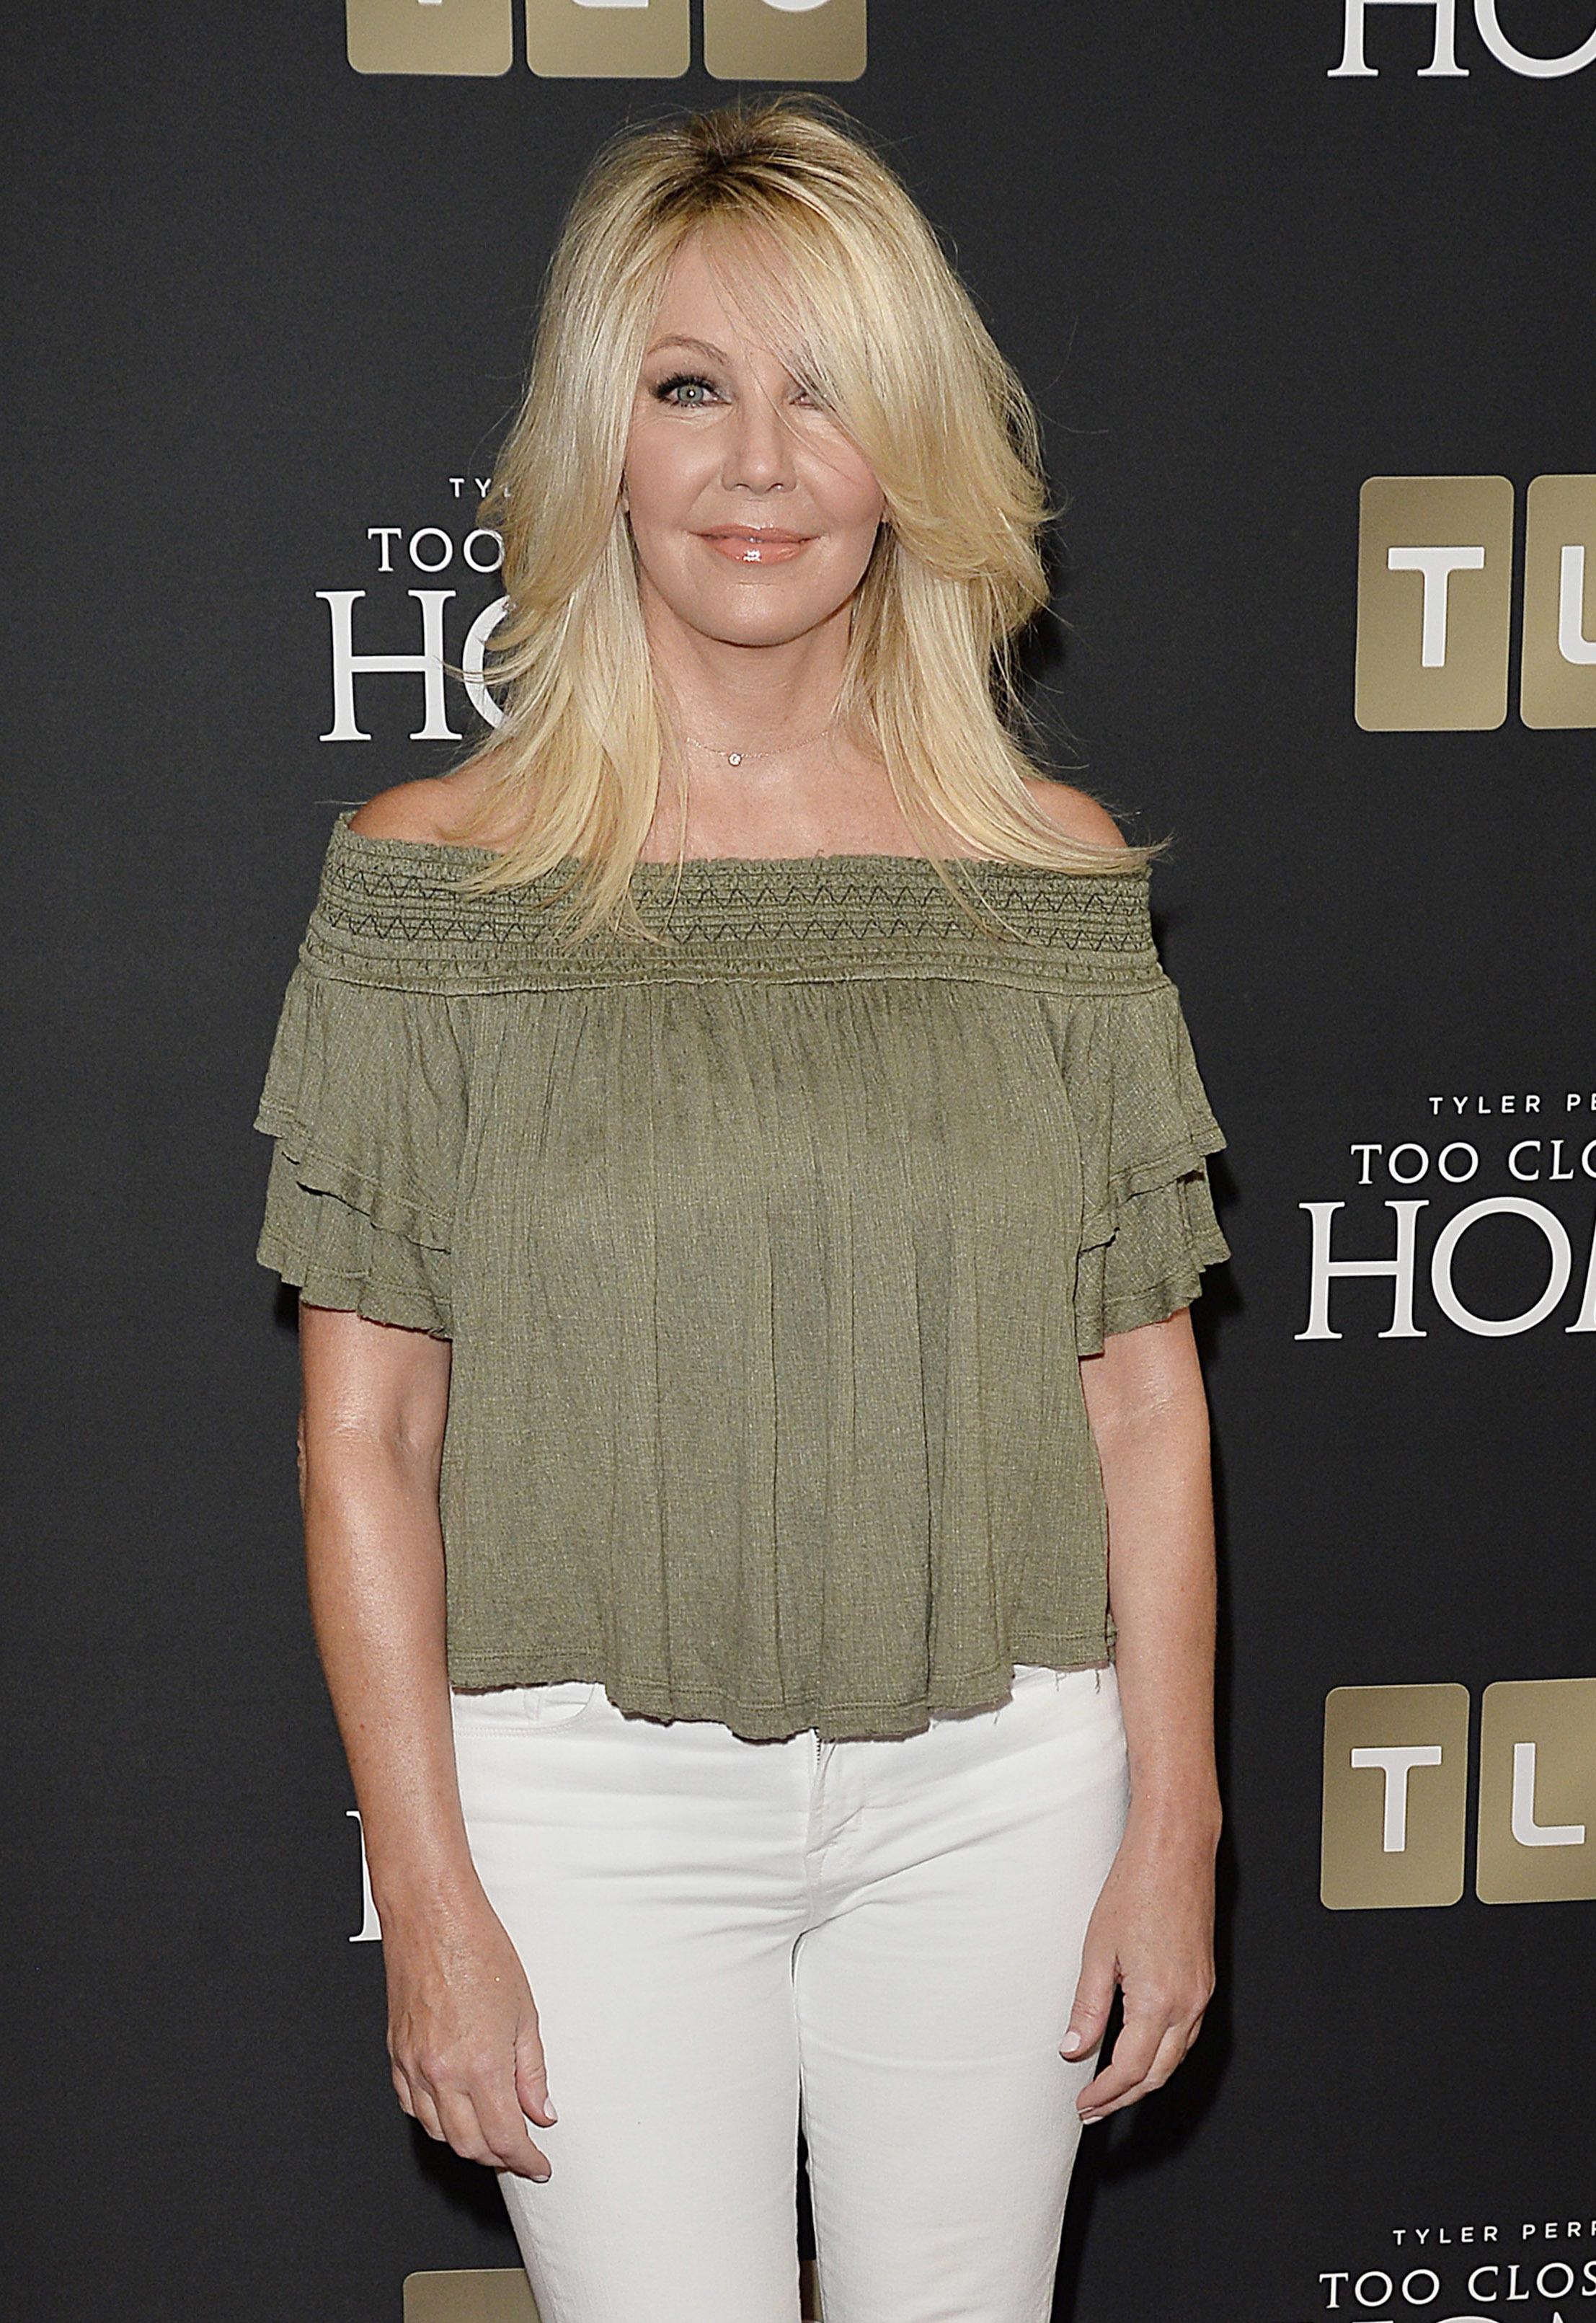 Heather Locklear enters treatment program for substance abuse: Report